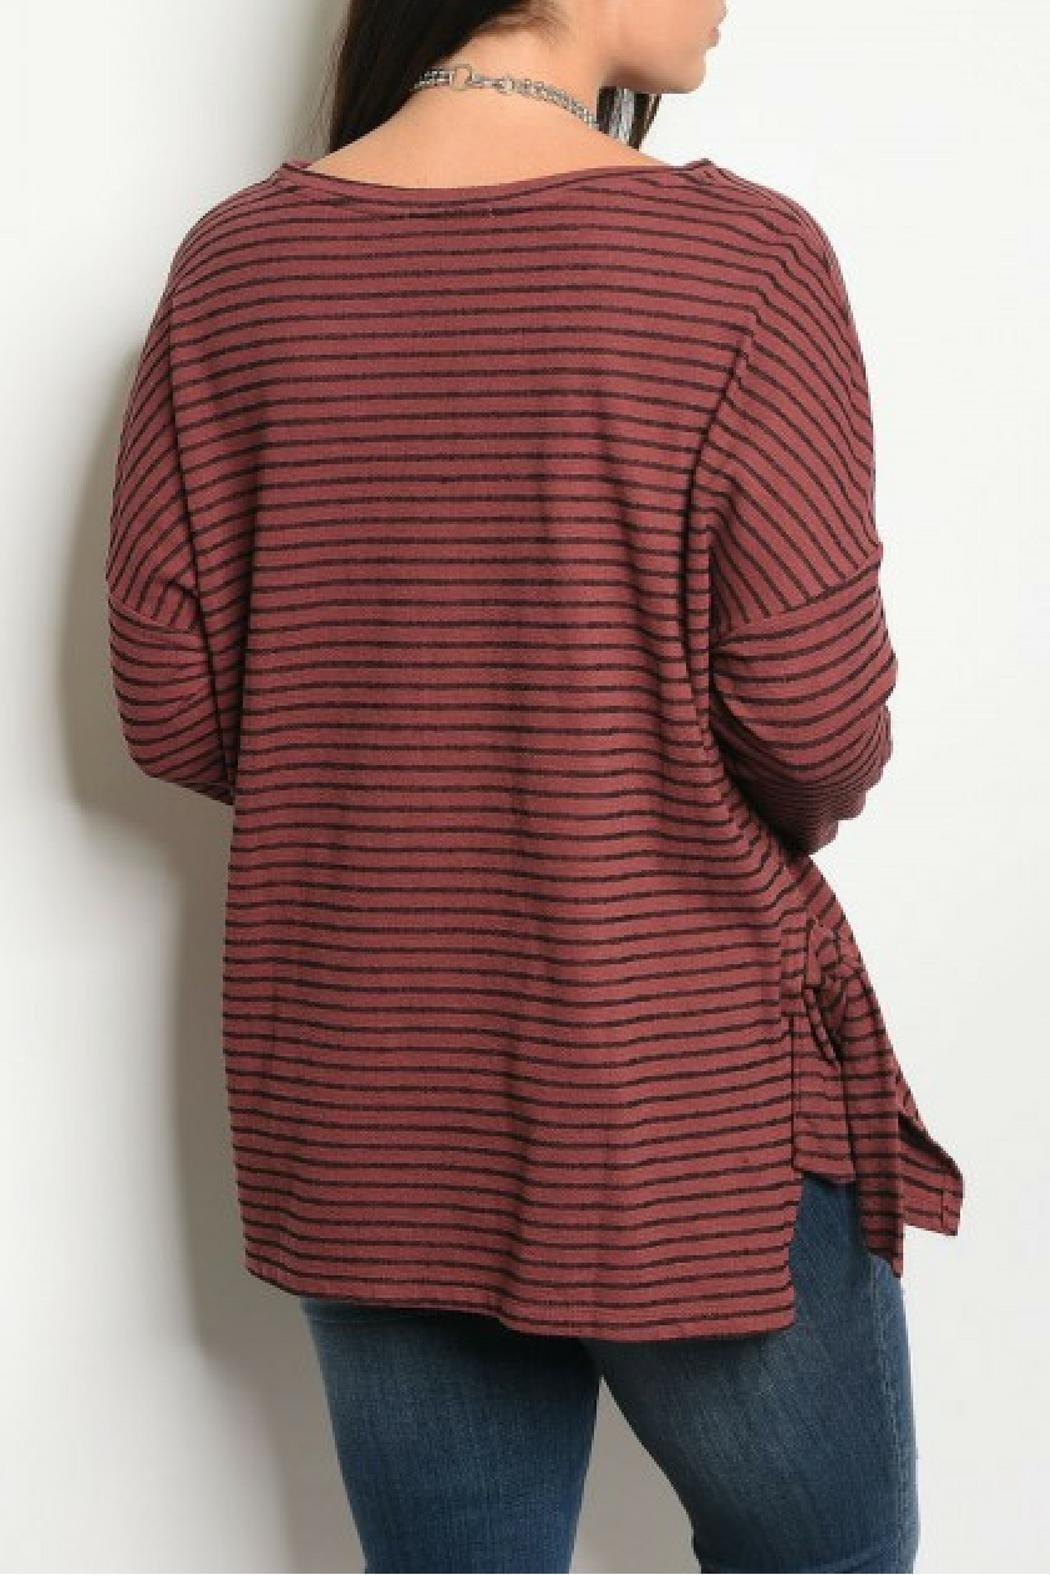 COVERSTITCHED Burgundy Stripe Top - Front Full Image